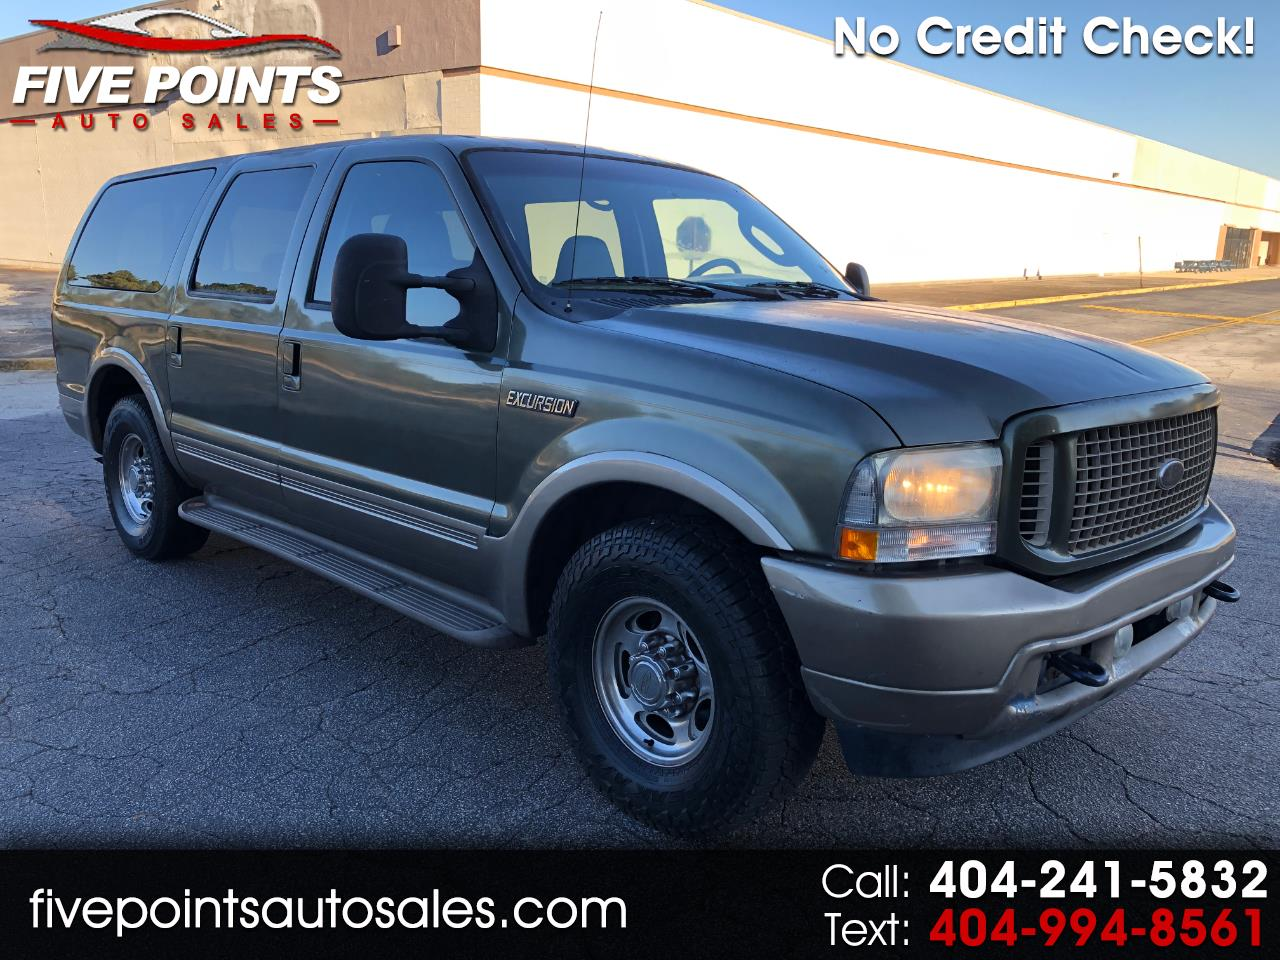 2004 Ford Excursion Eddie Bauer 6.8L 2WD